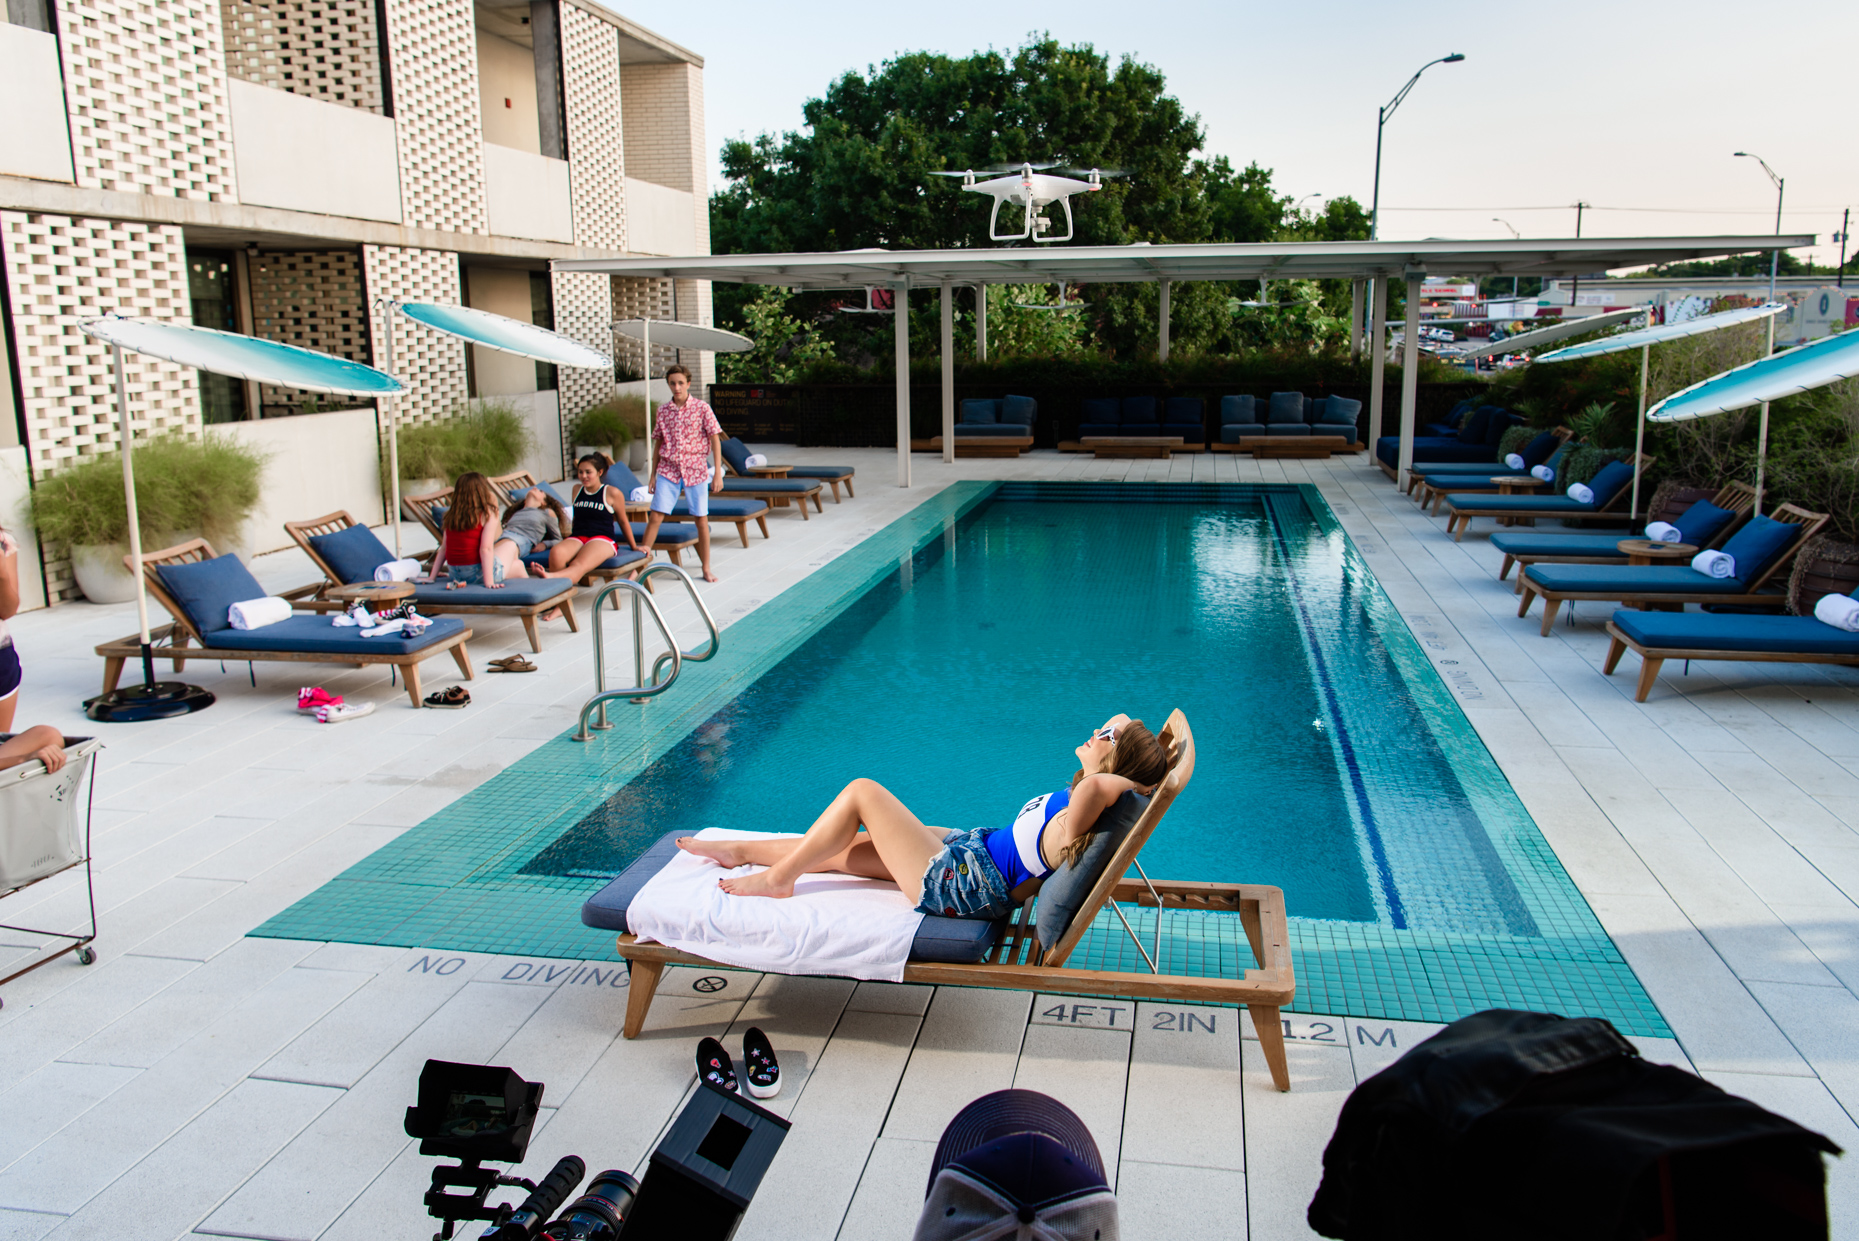 Austin-Commercial-Photographers-Madison-Mcwilliams-Behind-the-Scenes-Music-Video-South-Congress-Hotel-Pool